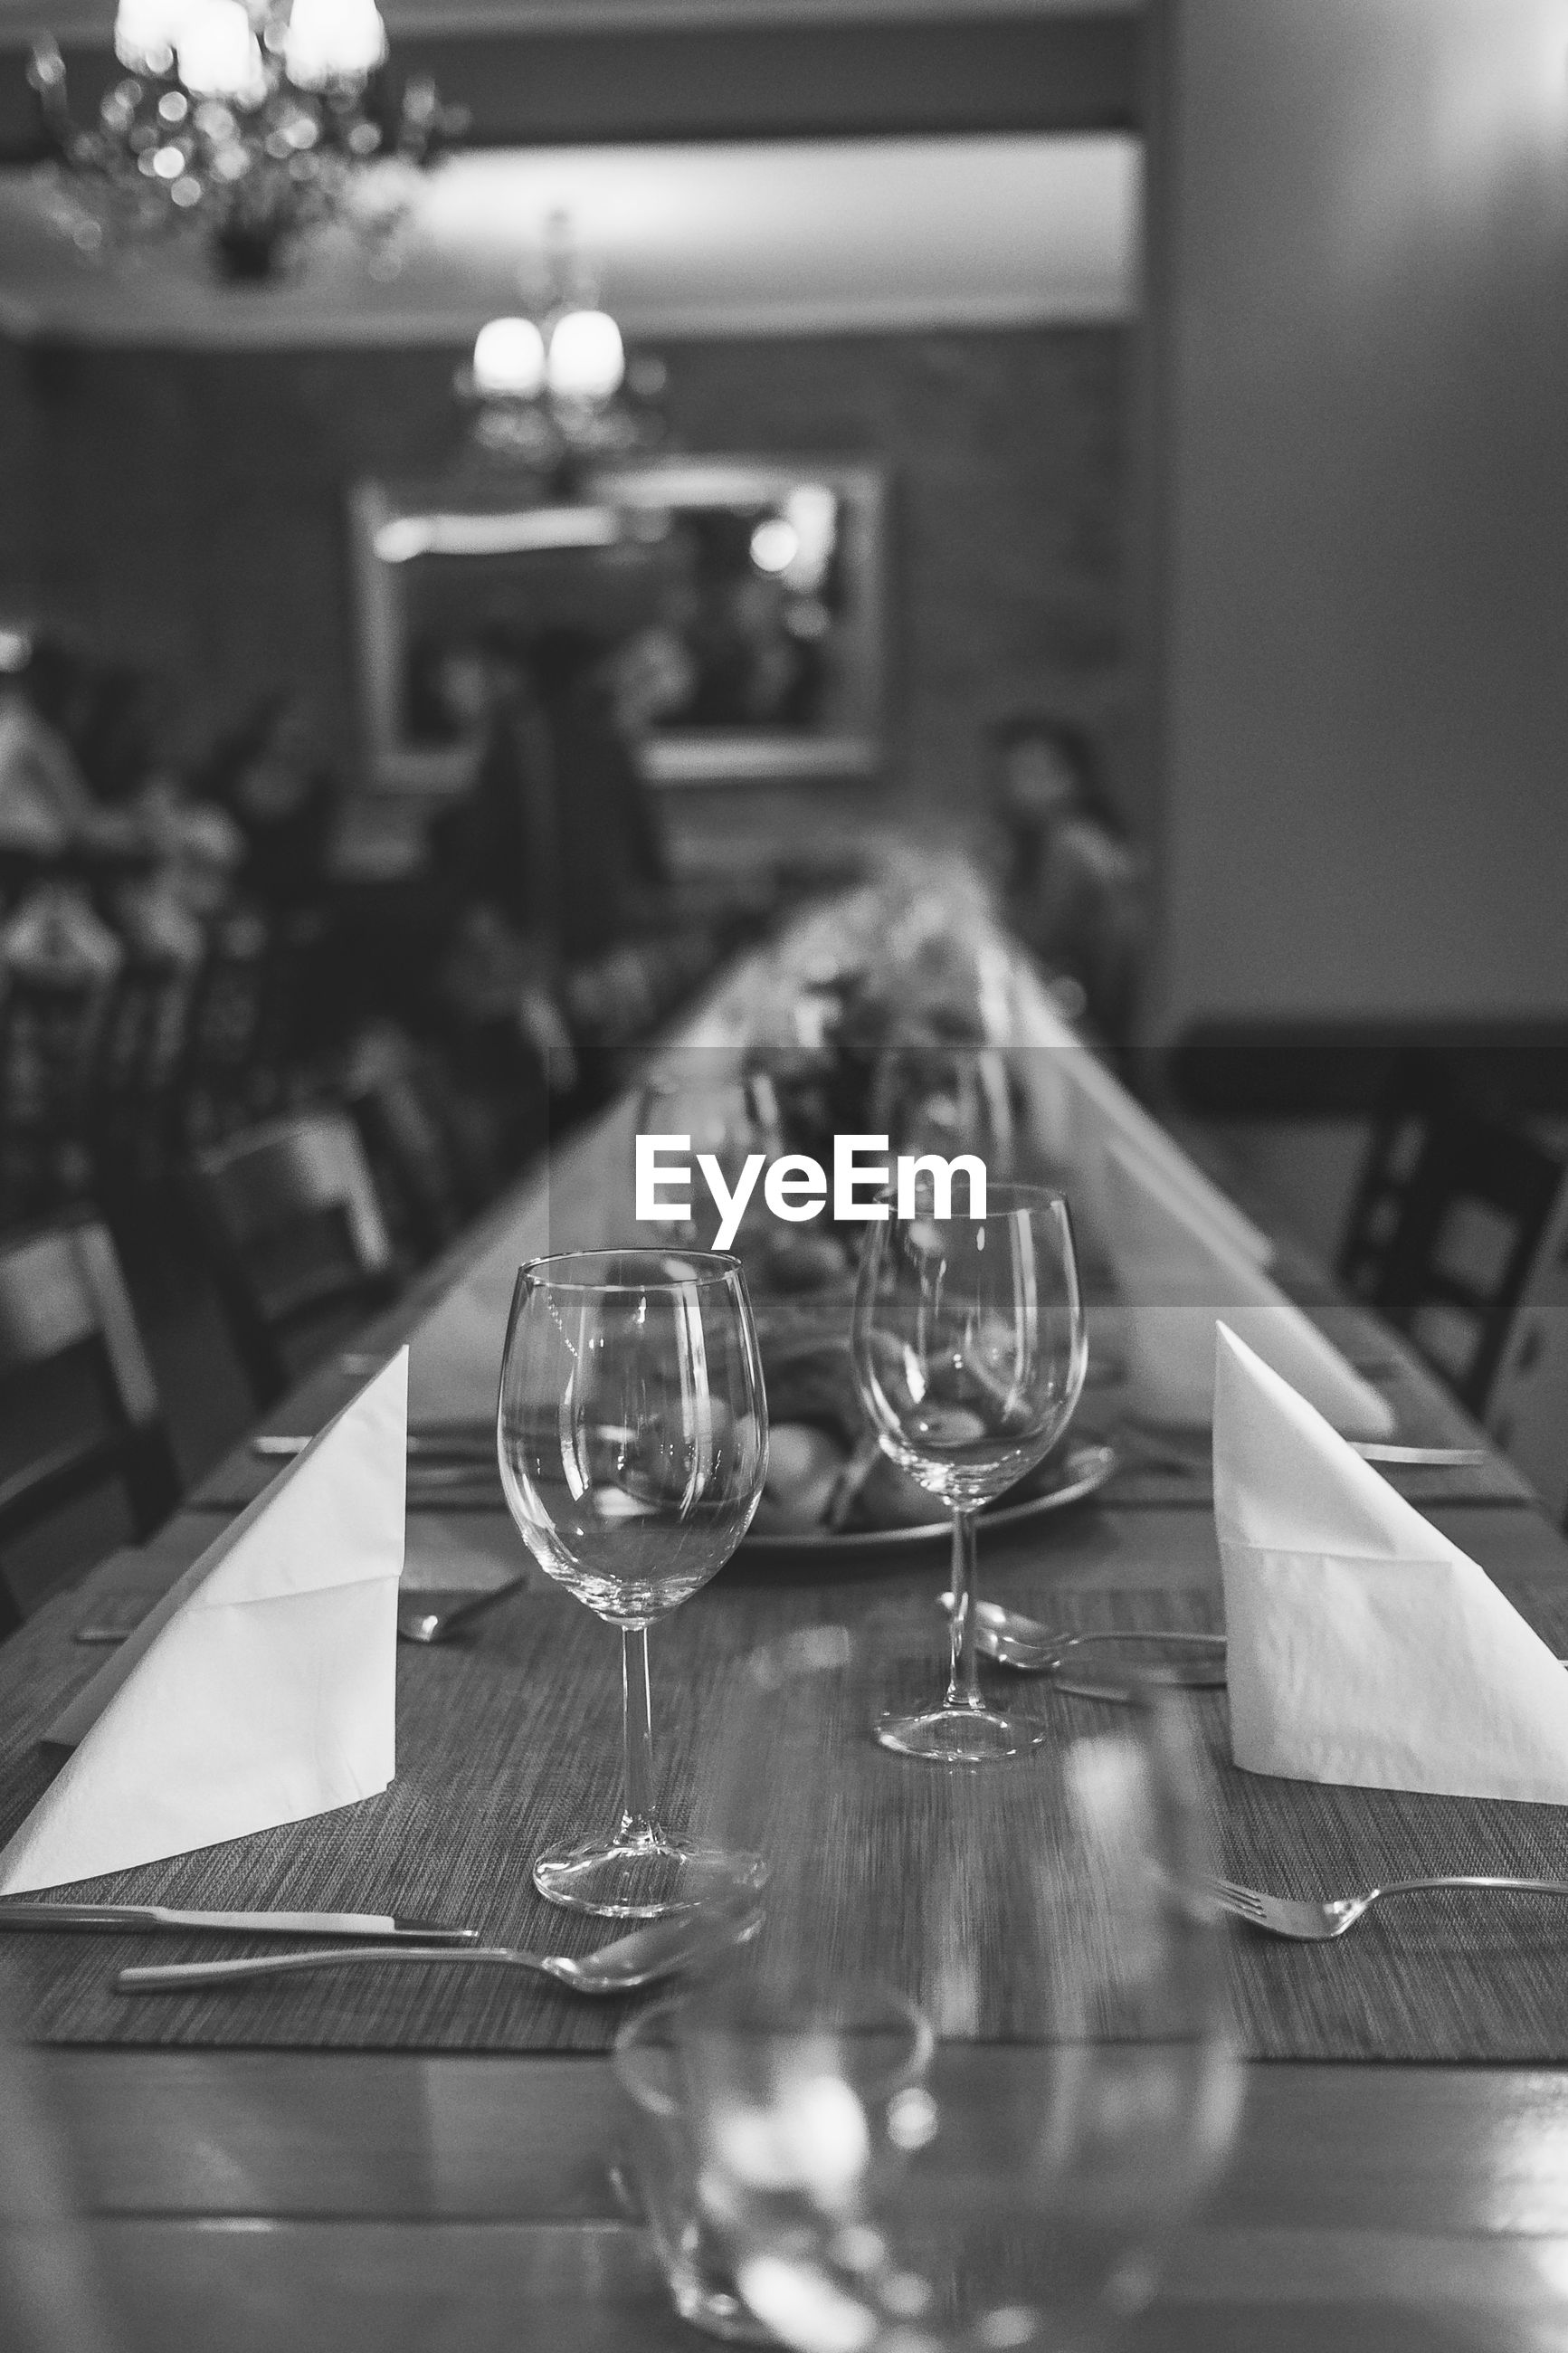 Place setting on dining table in restaurant